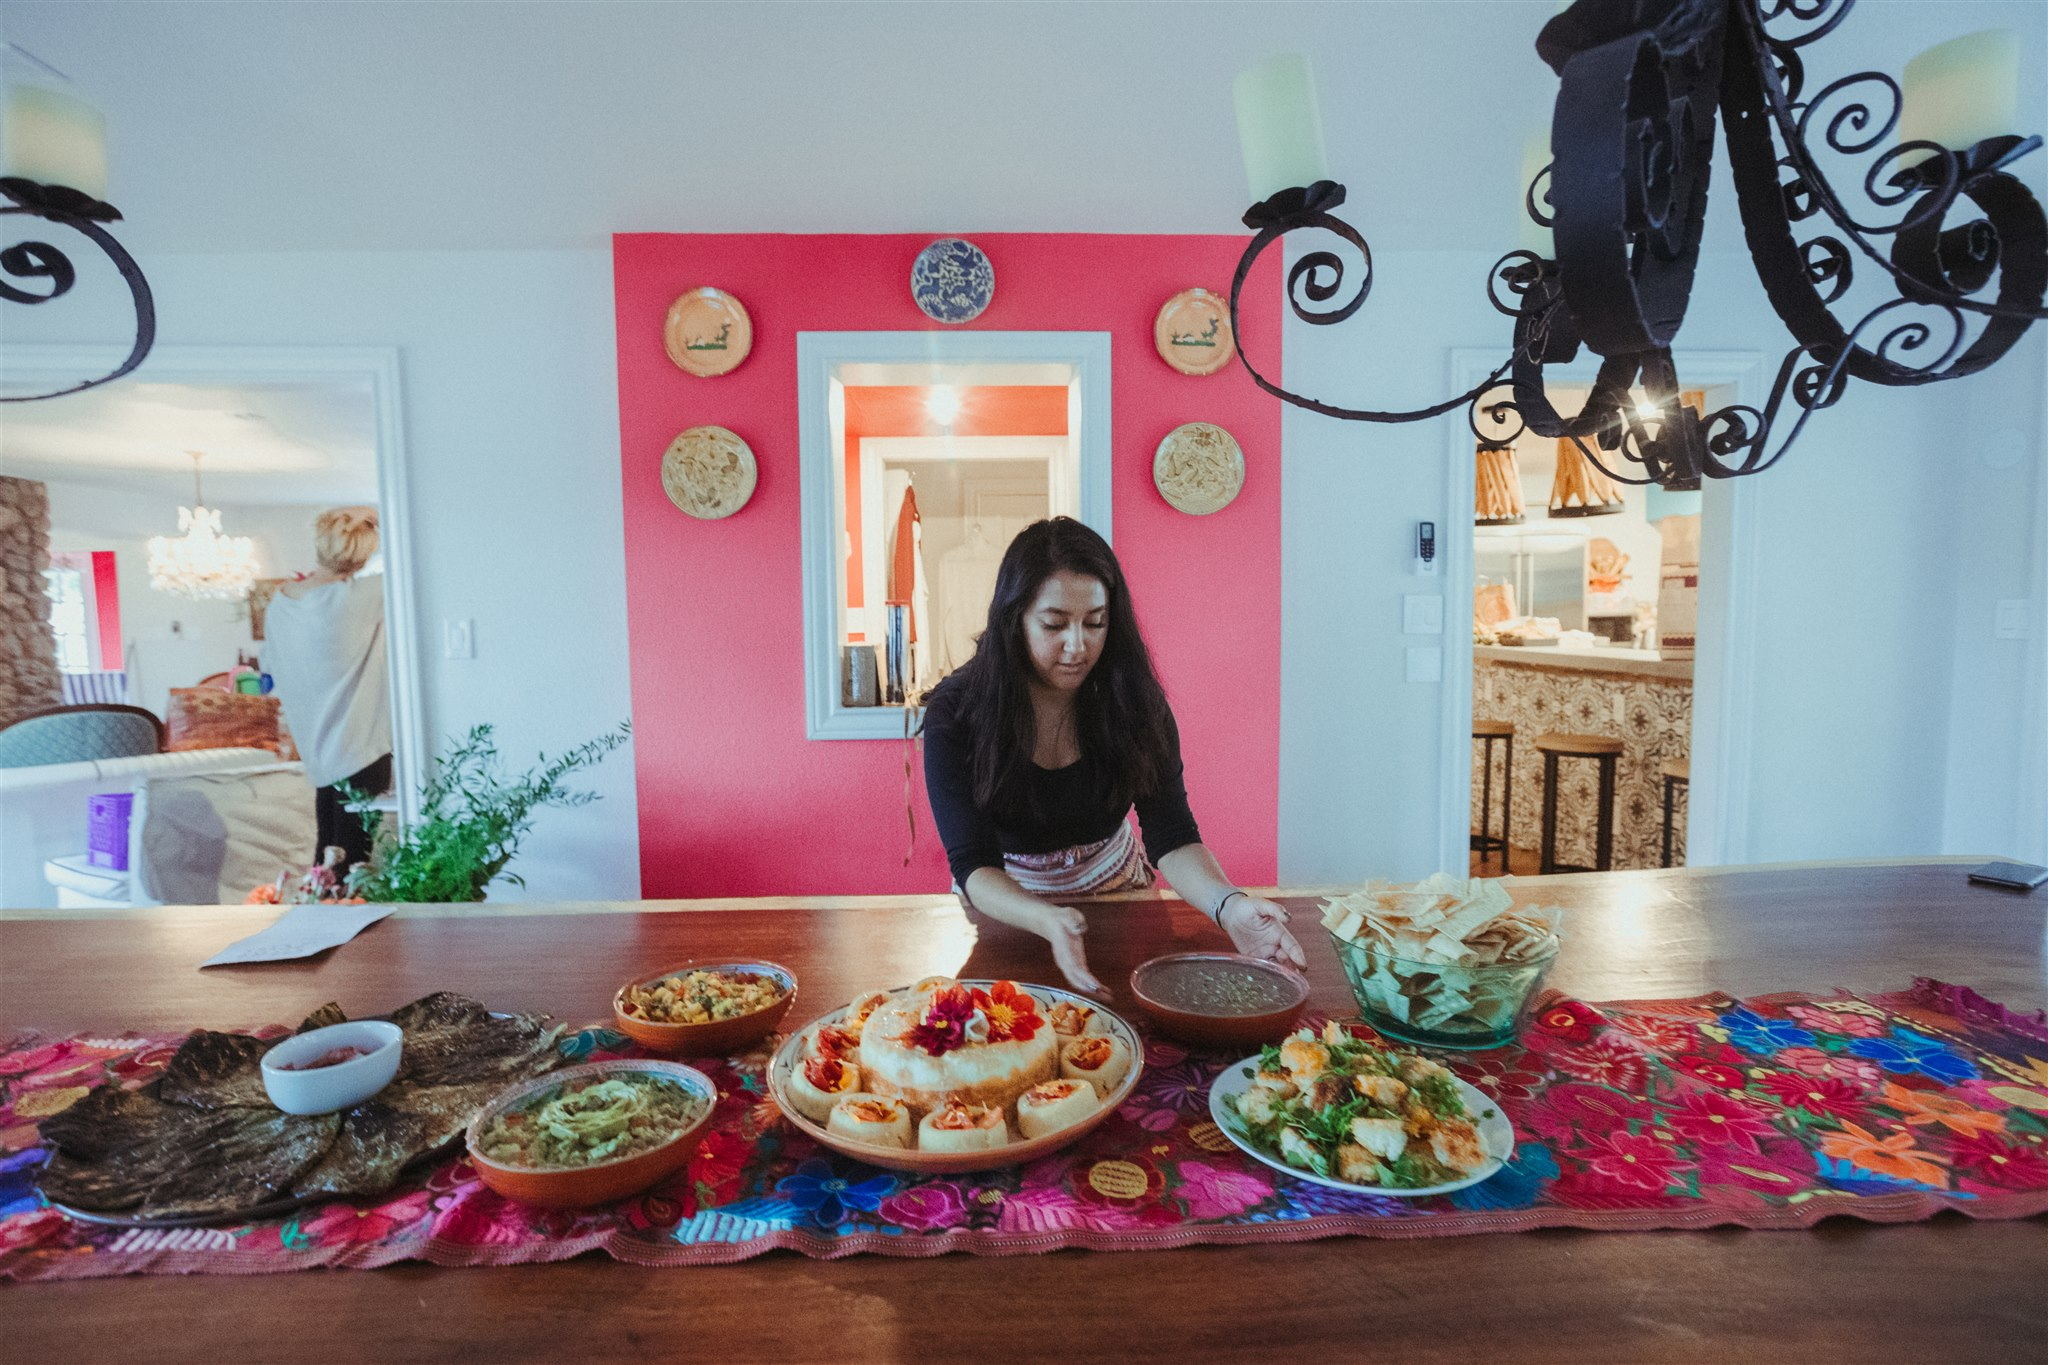 Mary-Beth from Heart of Celebrations setting the table with delicious flavorful Latinx dishes on a deep wood table with a floral Guatemalan table runner and a pink focal wall with colorful plates on it